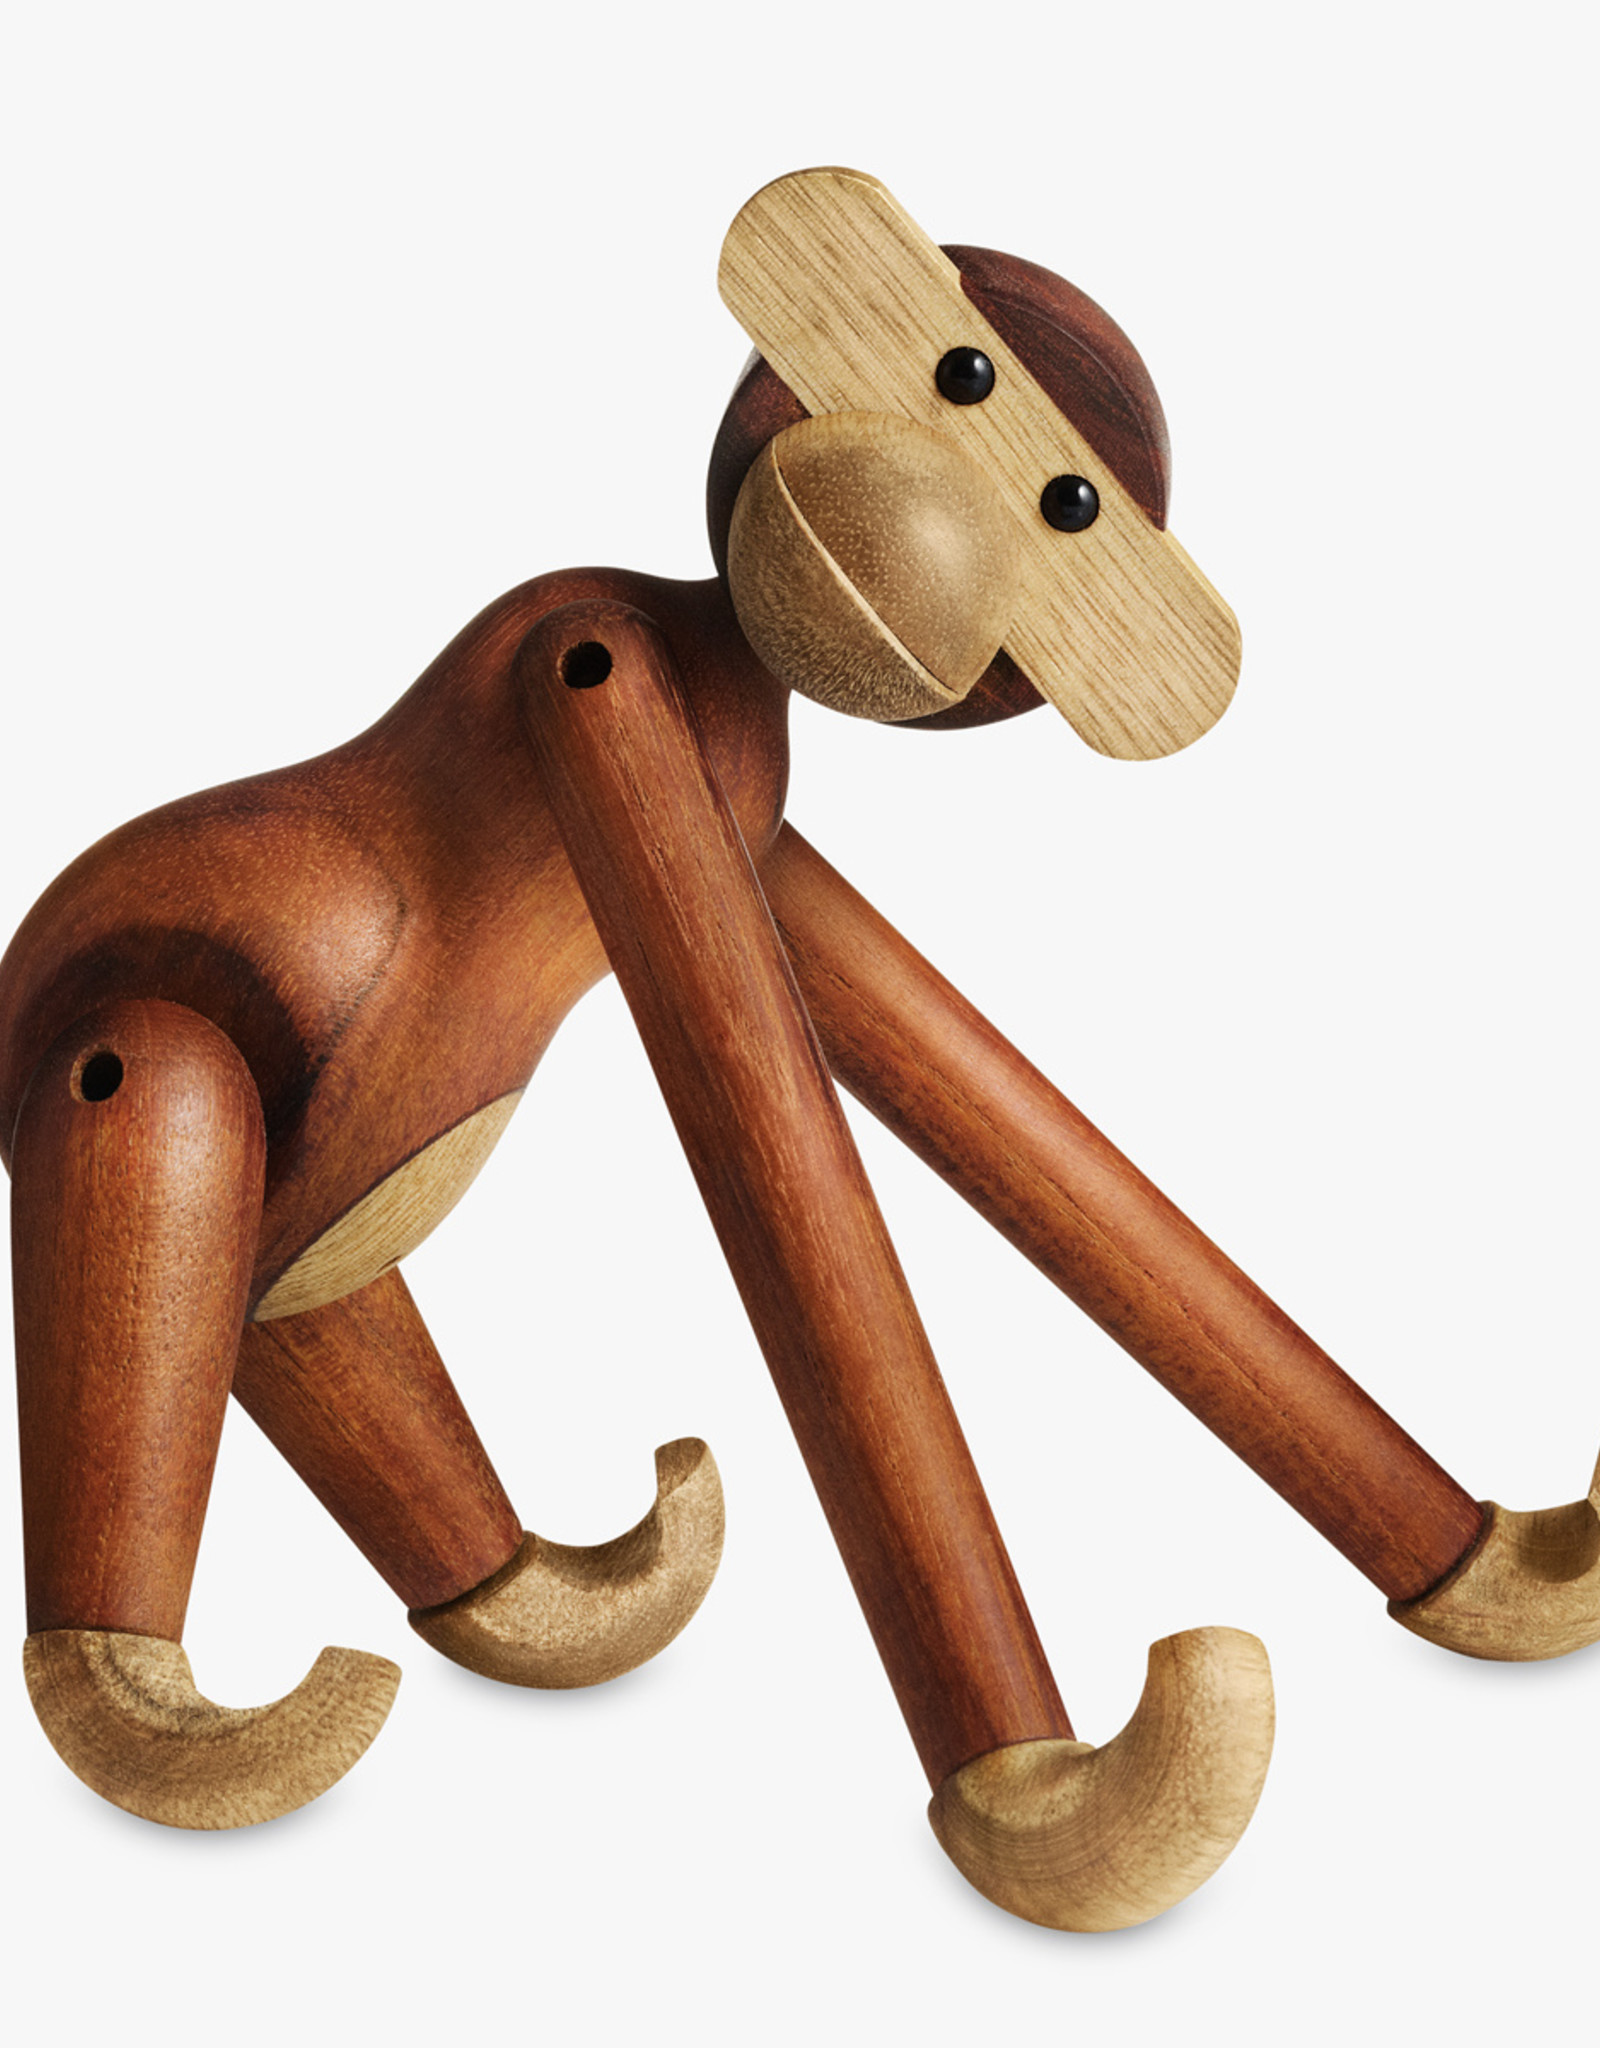 Monkey by Kay Bojesen | M | Teak and limba | H280mm